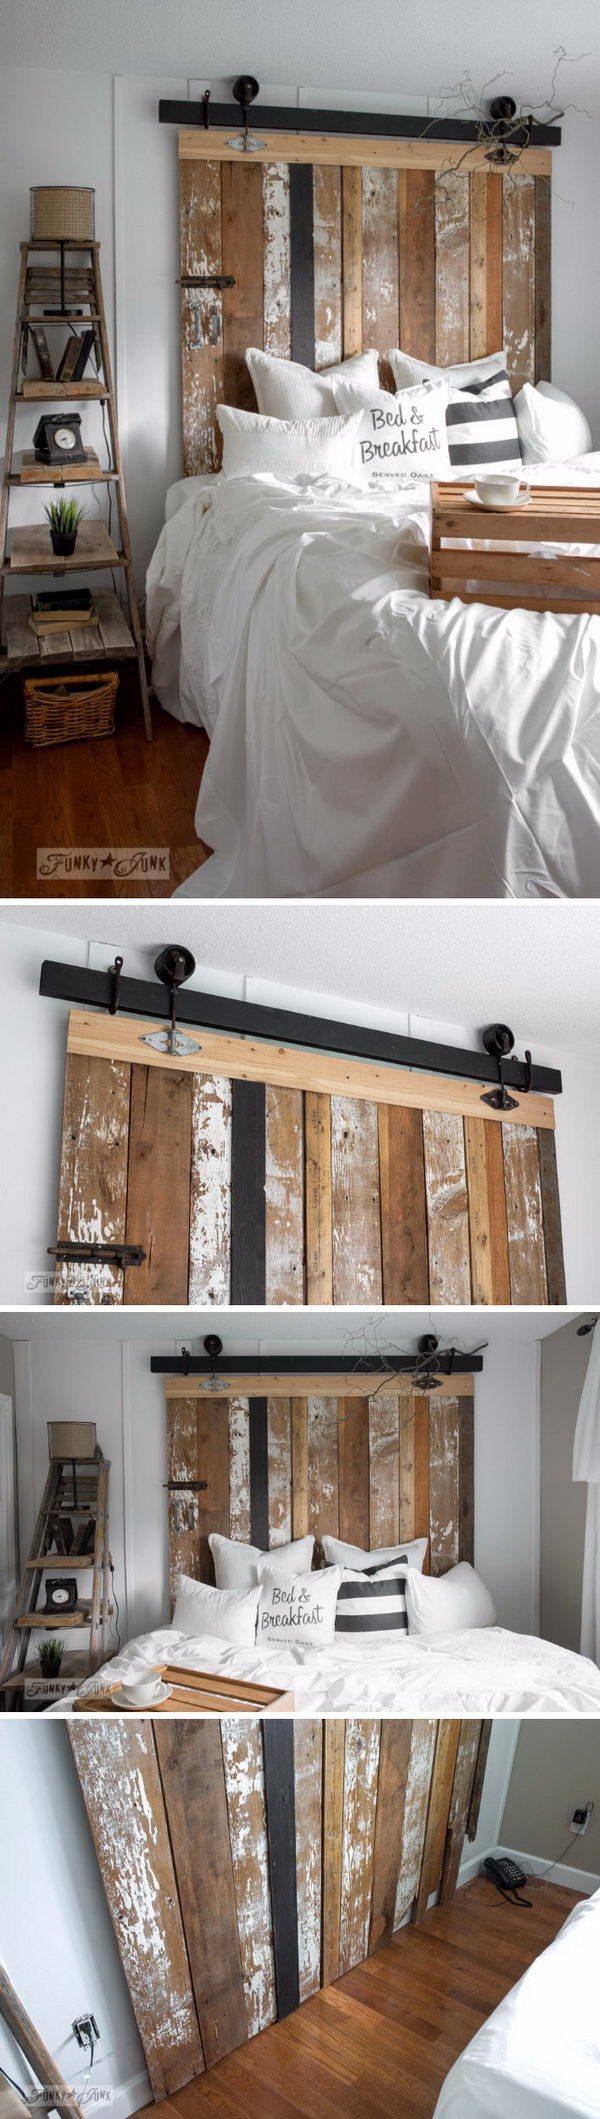 ideas wood floating headboard furniture size rustic reclaimed under with unusual display shelf wooden design master king headboards bedroom